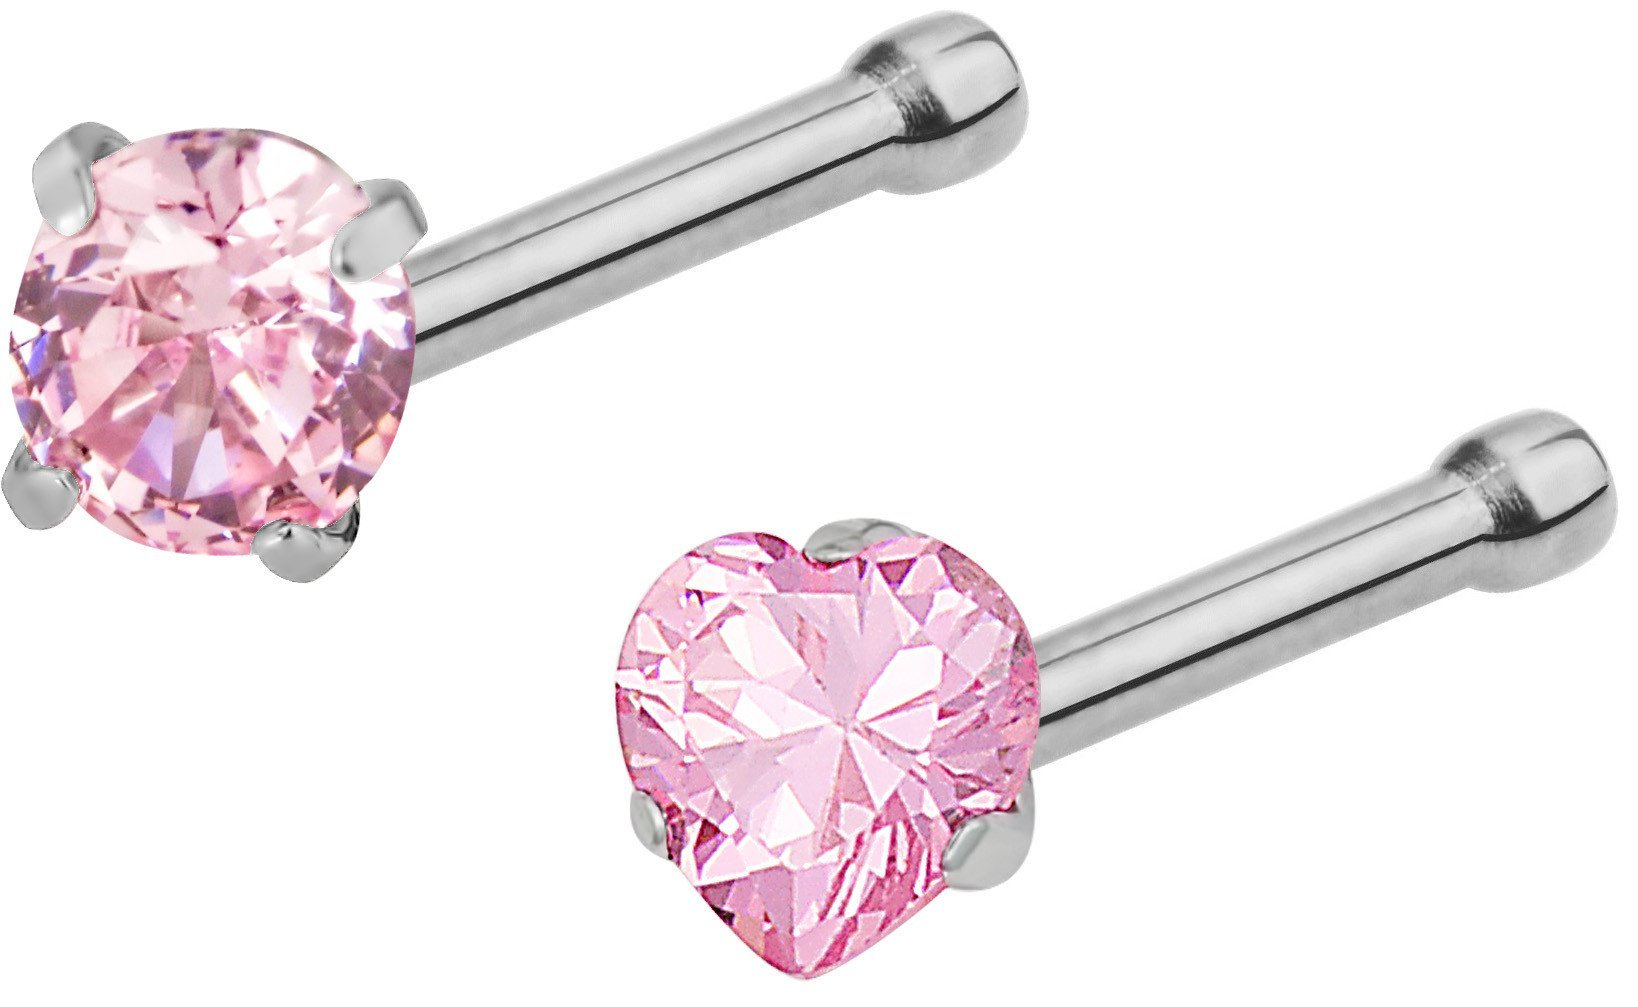 Set of 2 Straight Nose Studs: 20g Surgical Steel Round & Heart Shaped Pink CZ Crystal Nose Rings